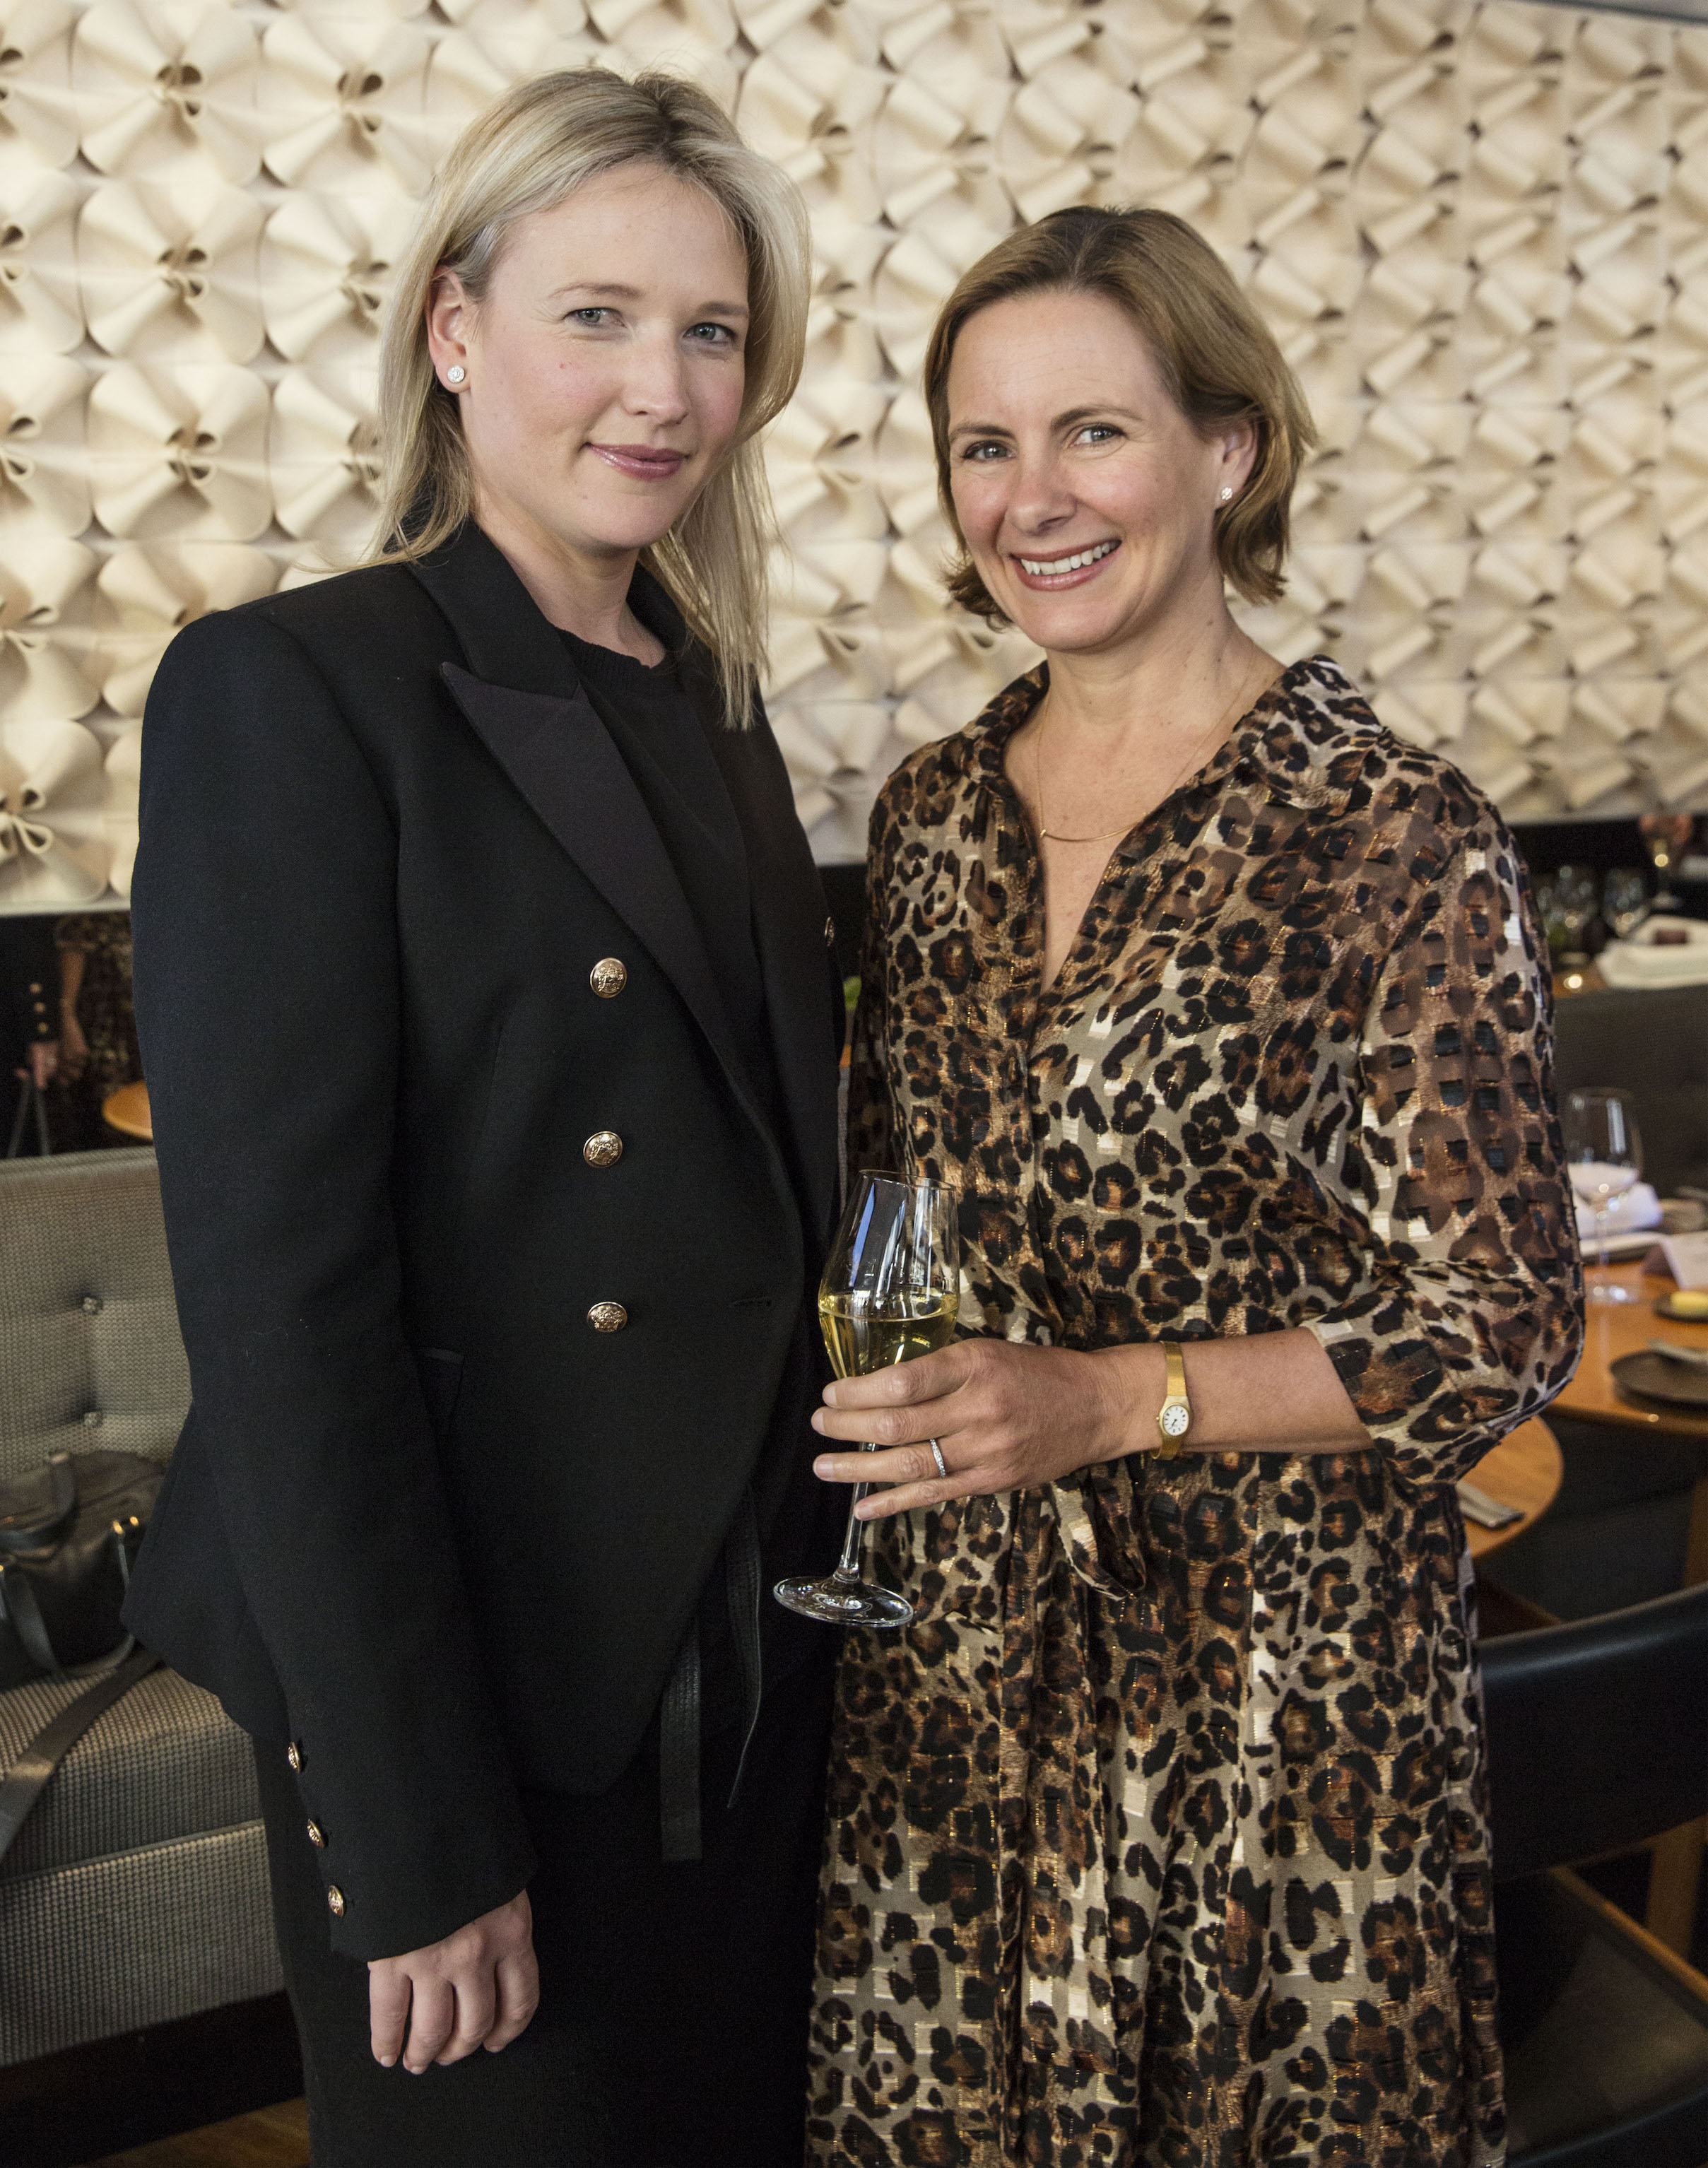 Michaela Langely from Tiffany & Co and Editor of the AFR Magazine Katrina Strickland at the AFR Watch issue launch at 44 Bridge Street on July 27, 2016 in Sydney, Australia. (Photo by Jessica Hromas:Fairfax Media)